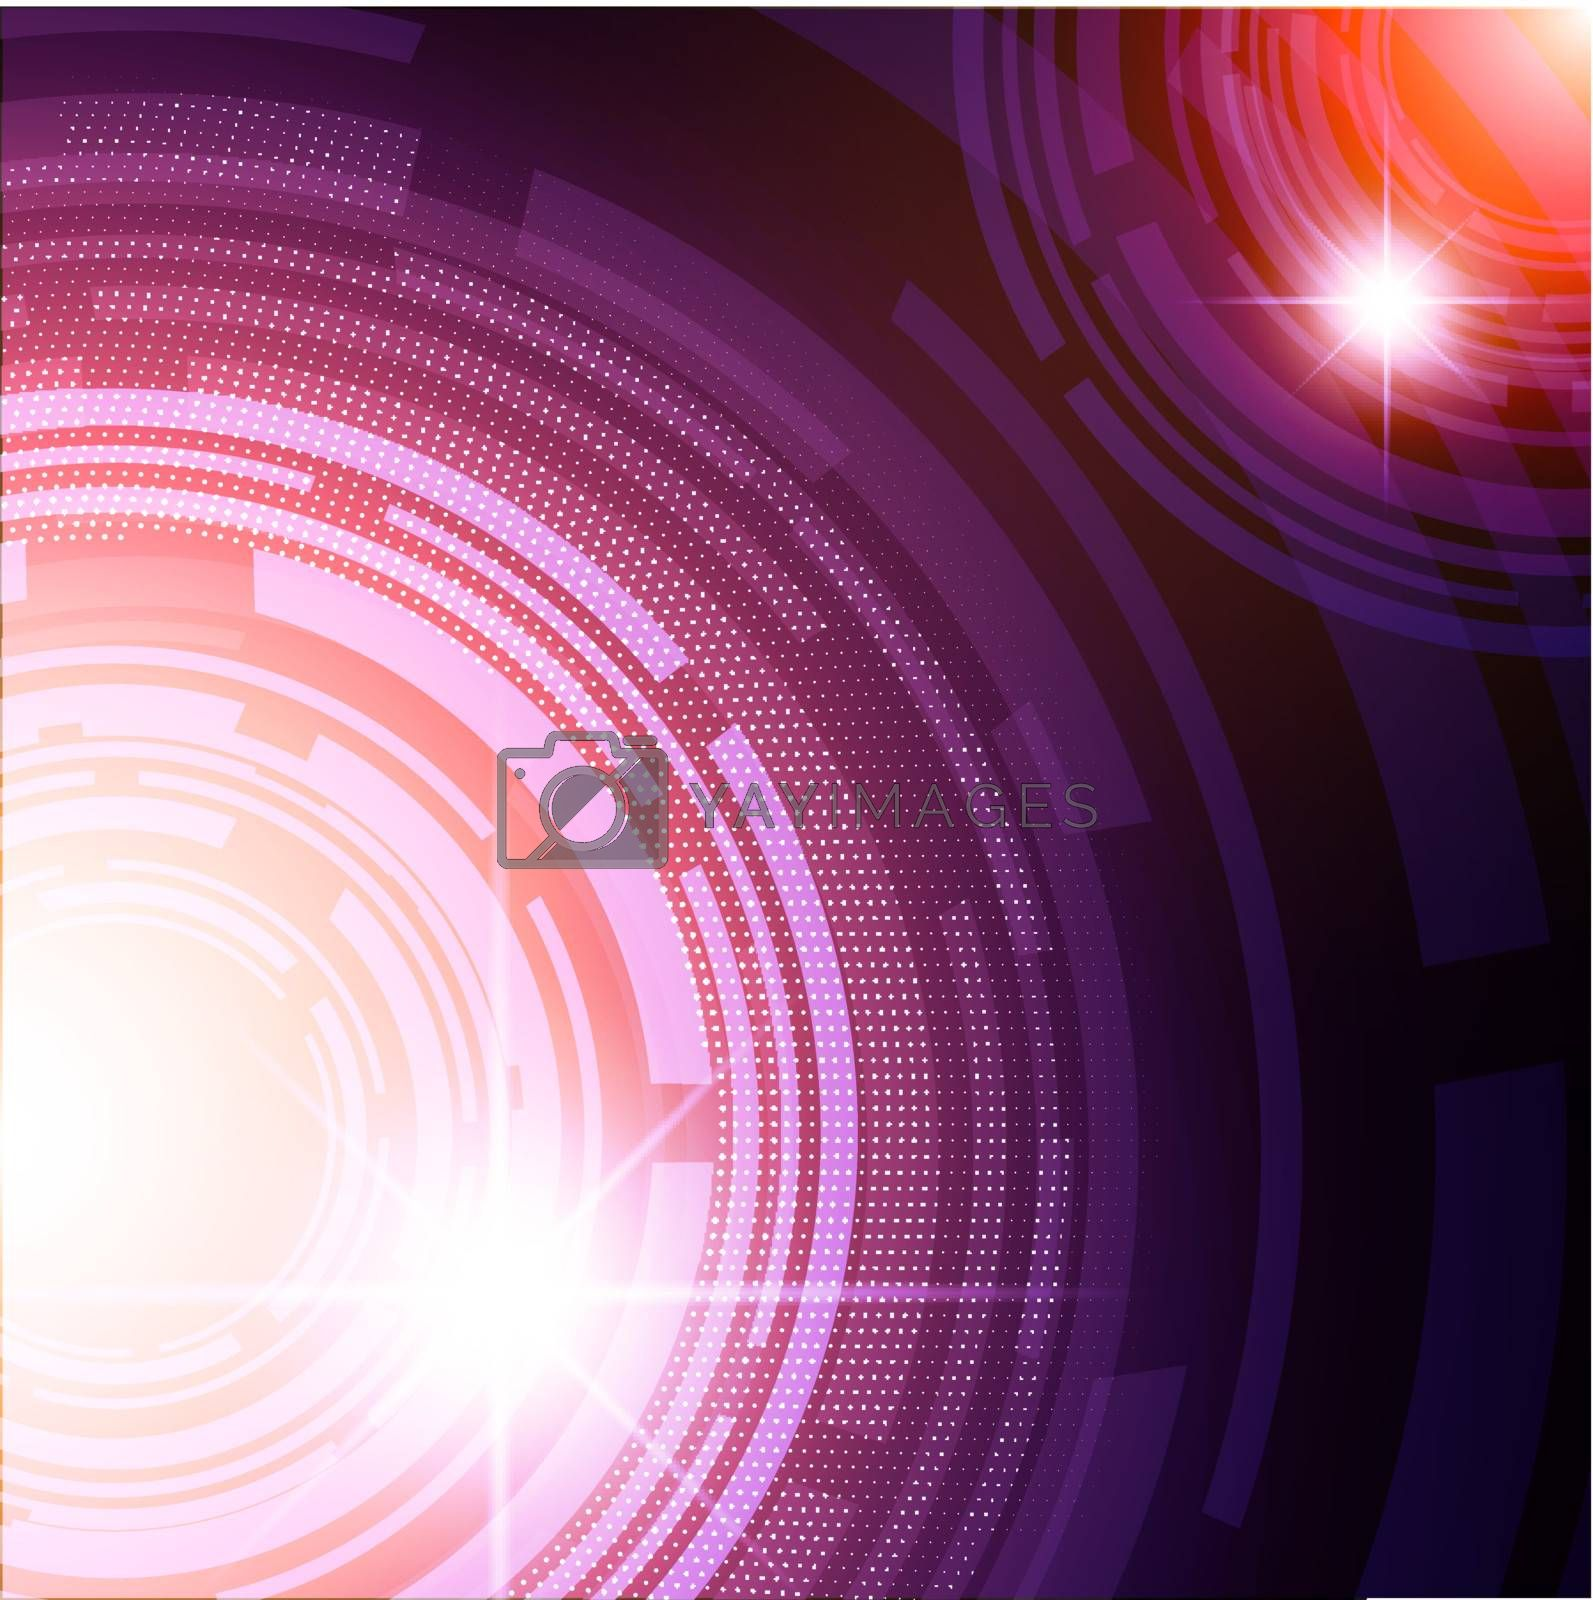 abstract bright tech background with round shapes